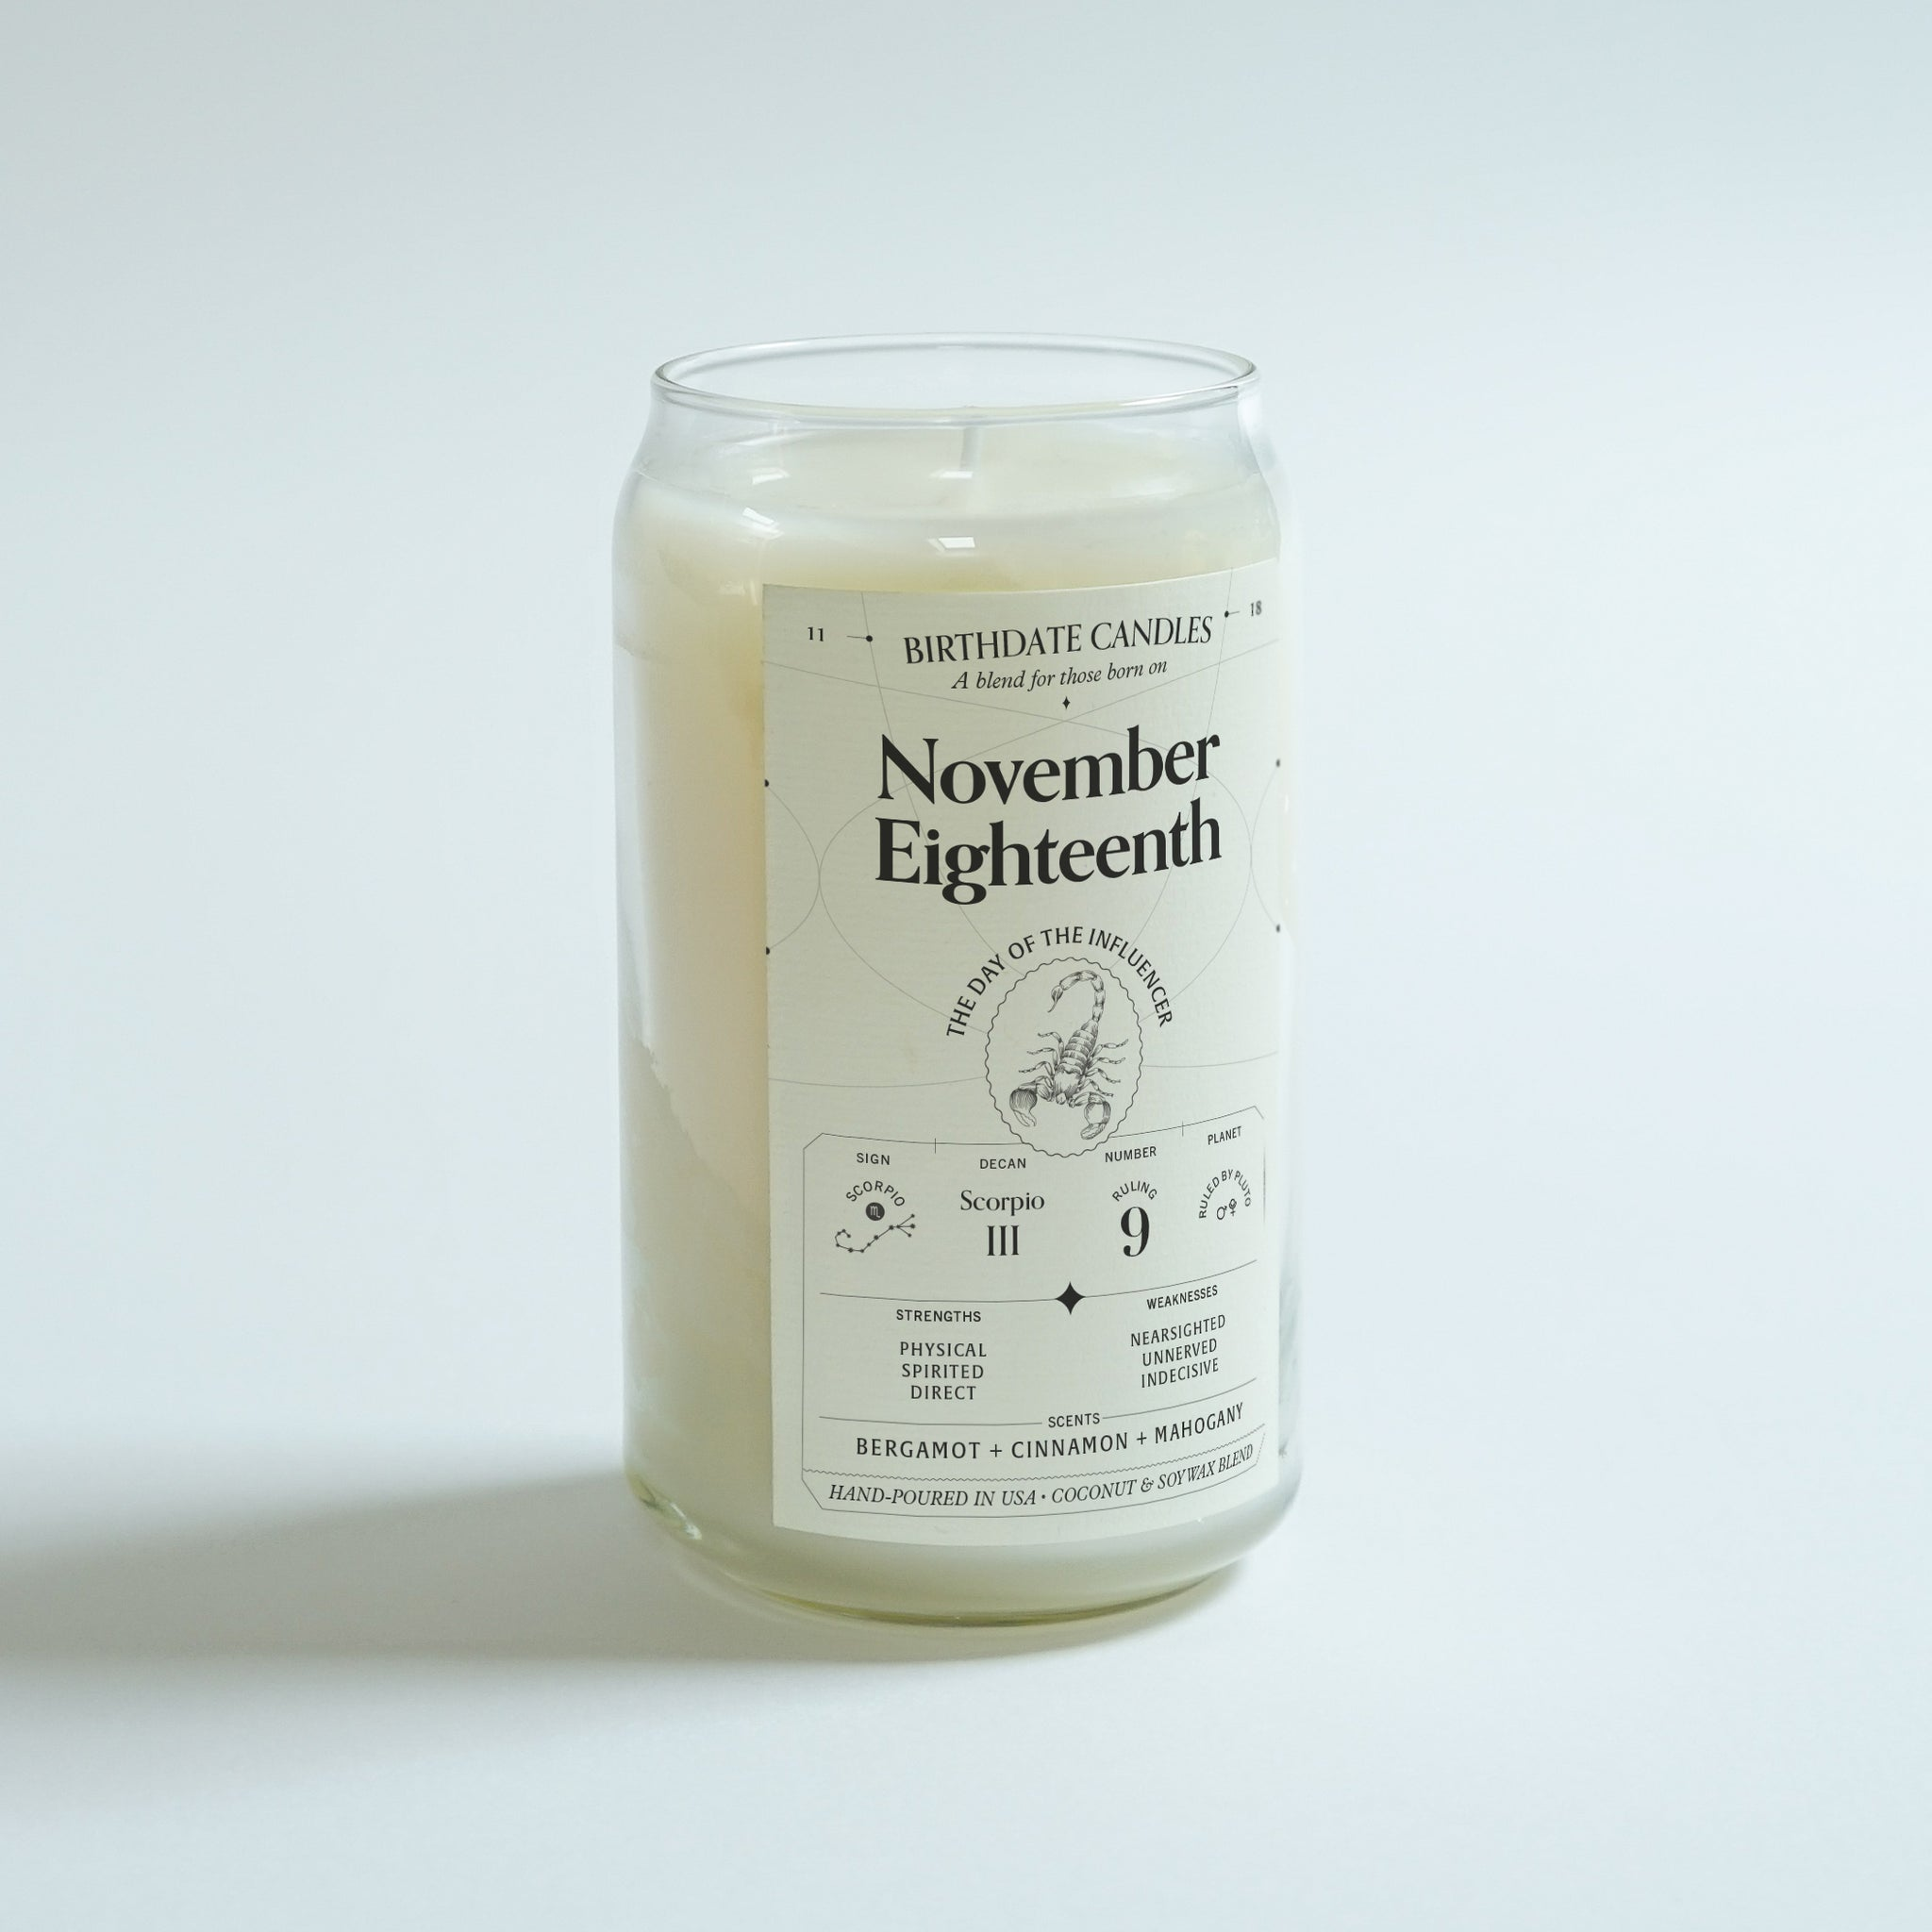 The November Eighteenth Birthday Candle